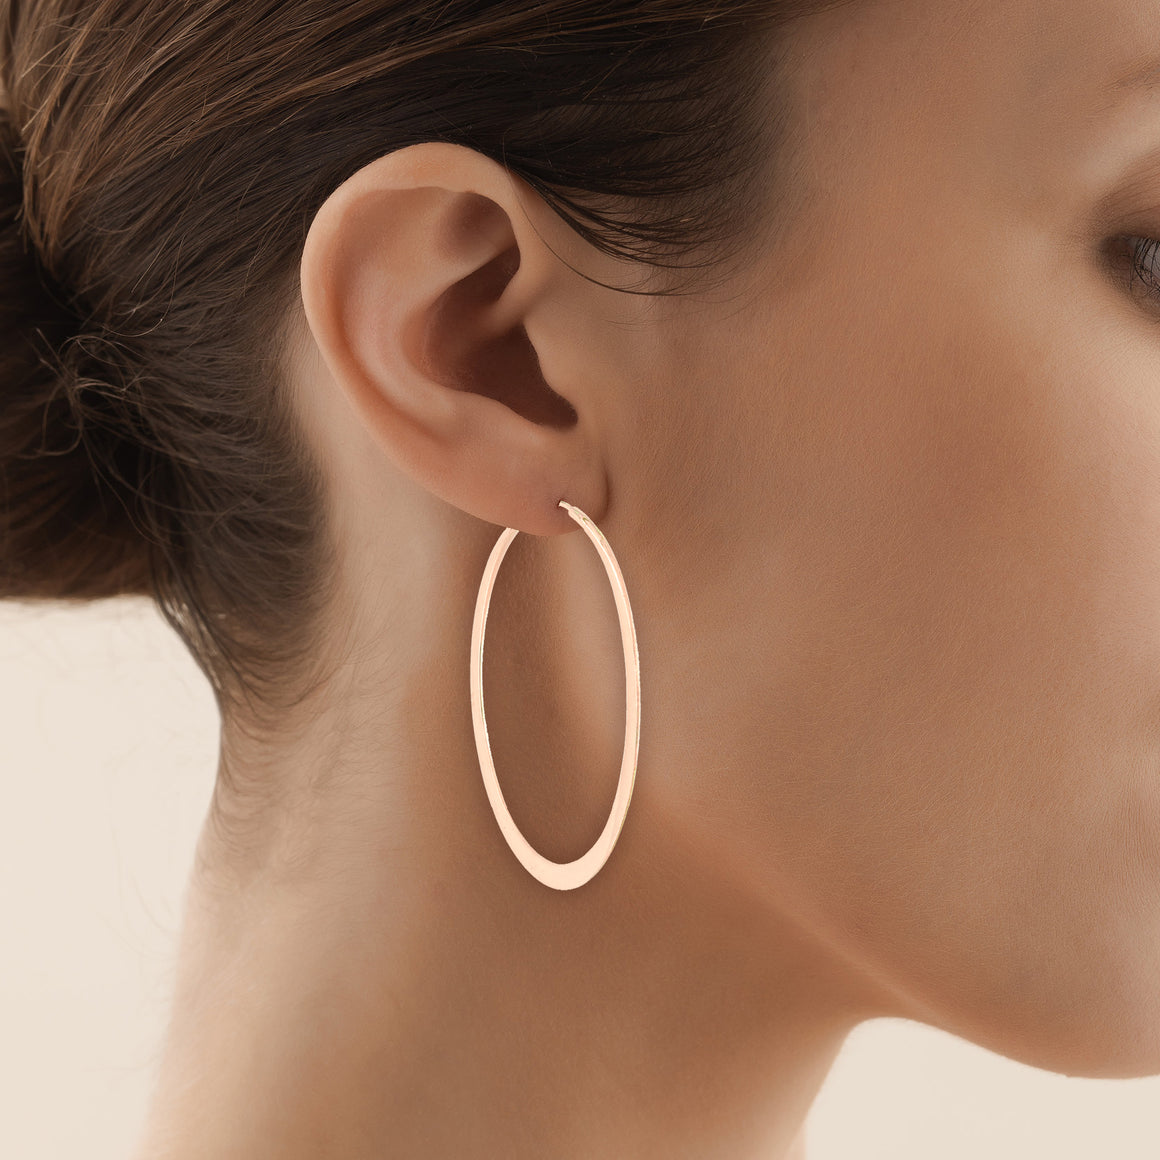 Endless Hoop Earrings in Matte Rose Gold - 2 inch